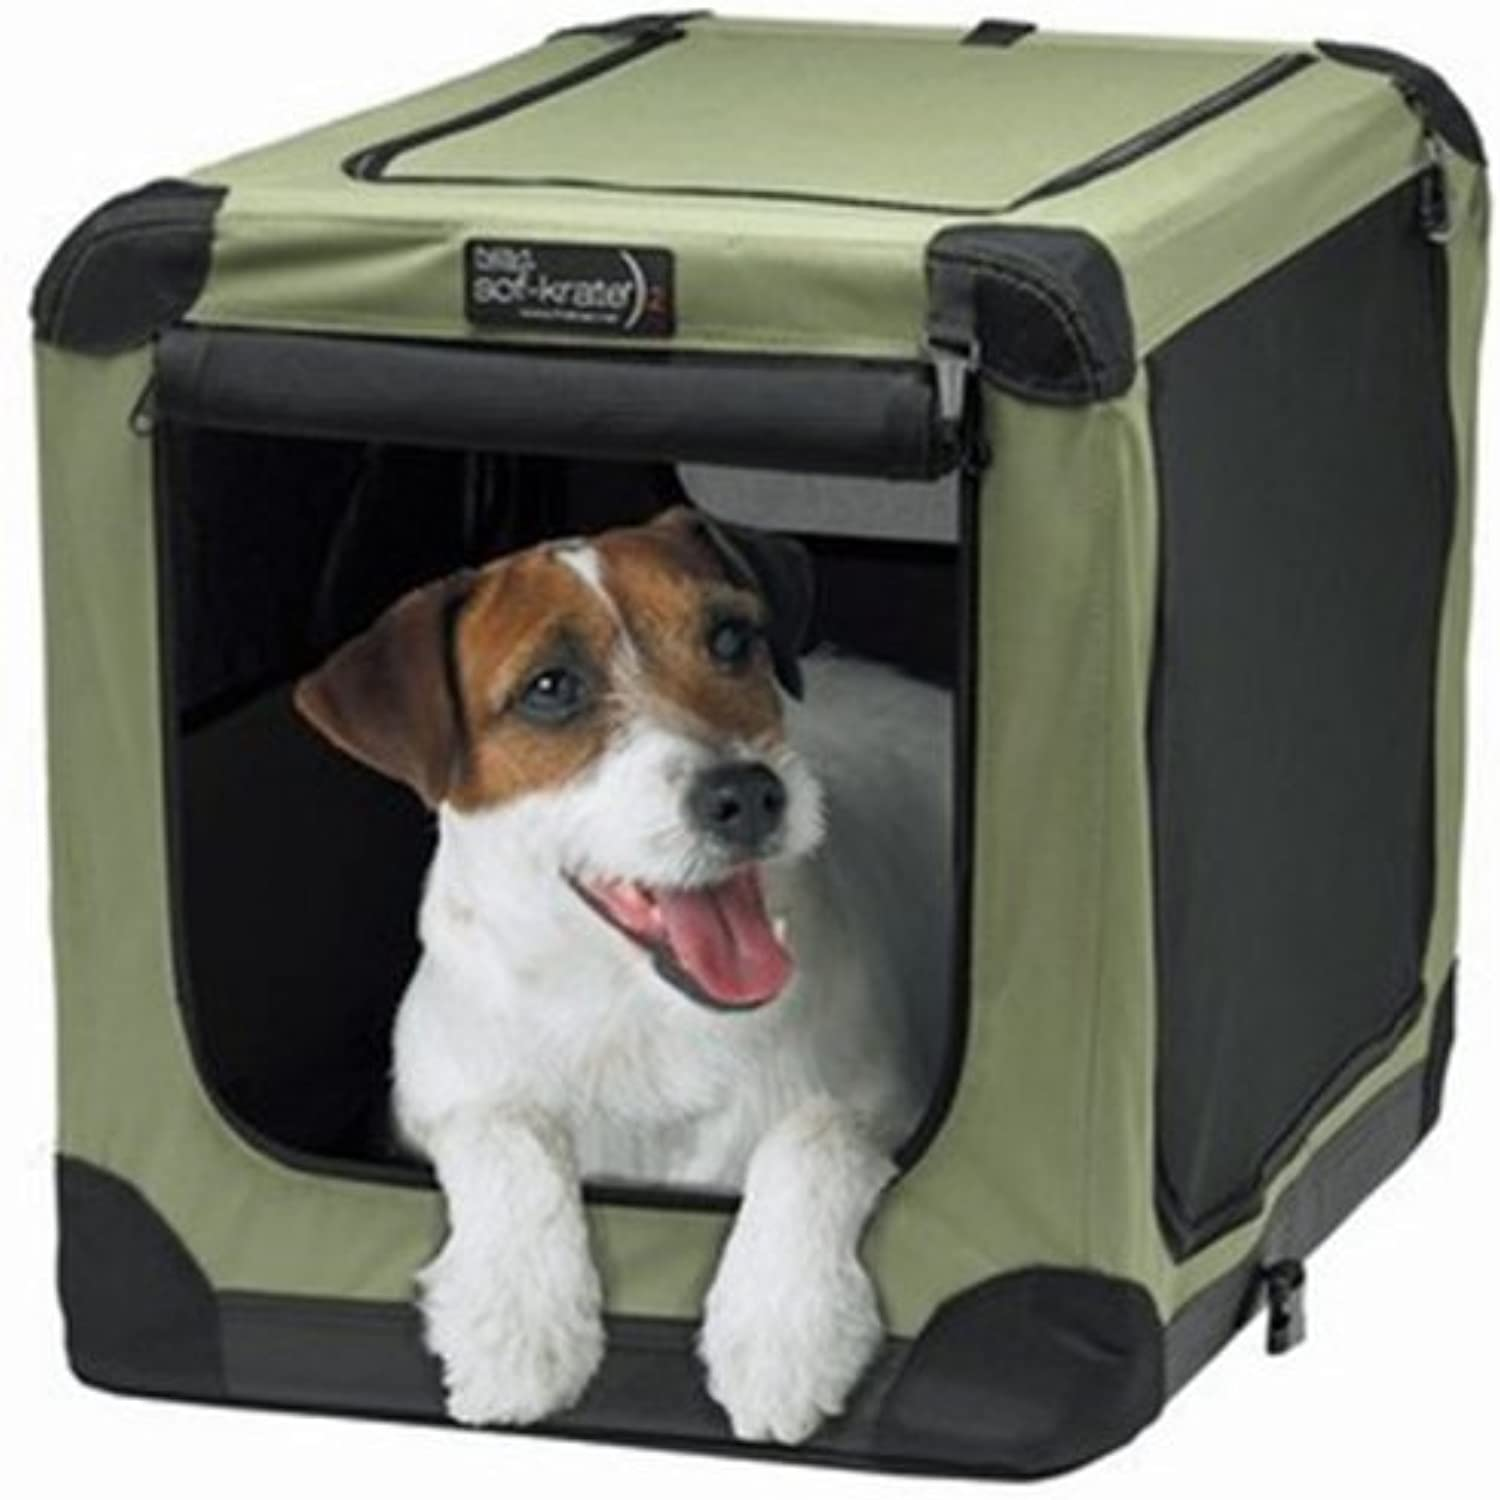 Noz2Noz 663 N2 SofKrate Indoor Outdoor Pet Home, 26Inch, for Pets up to 30 Pounds (663) by Noz2Noz